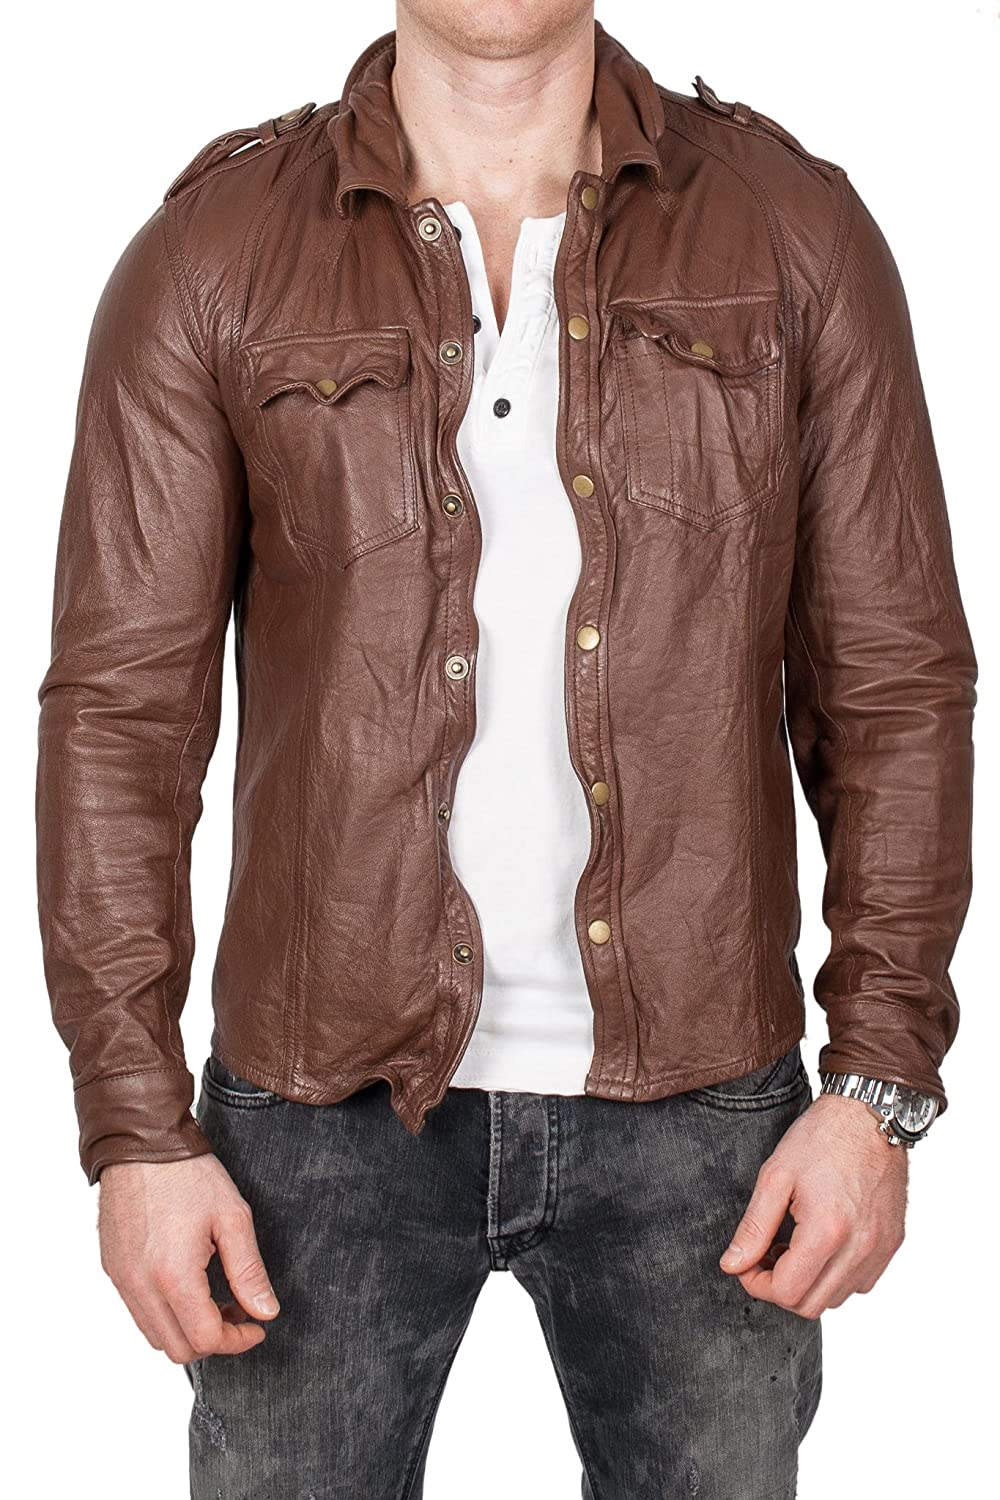 """genuine sheepkin leather shirt/ jacket by """"lines by cris d. fedd"""", mocca"""